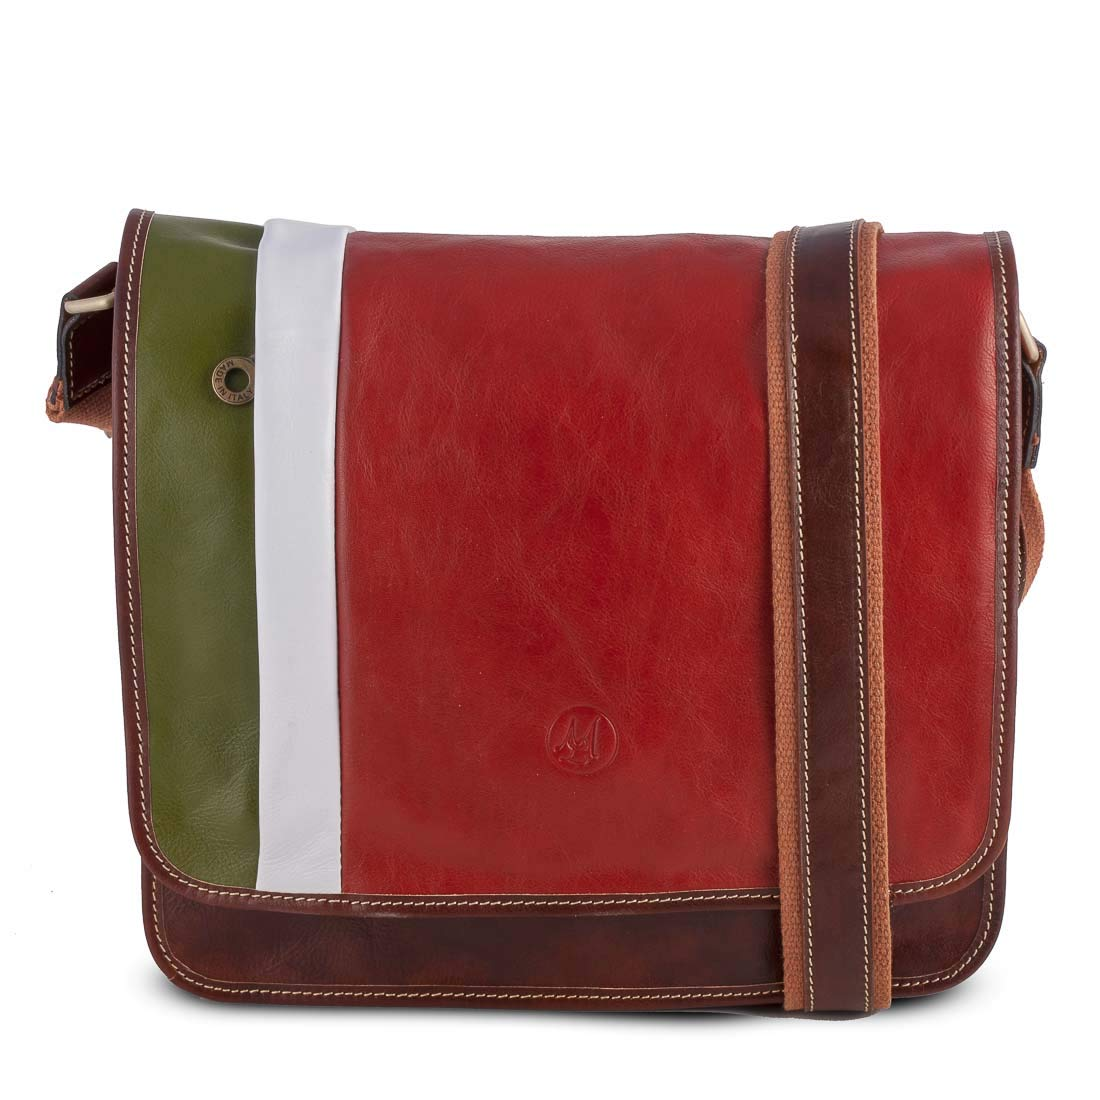 Messanger Italy Bag in Leather 10x32 H29 cm MICHELANGELO Genuine Leather Calf-Skin Italy ITALY